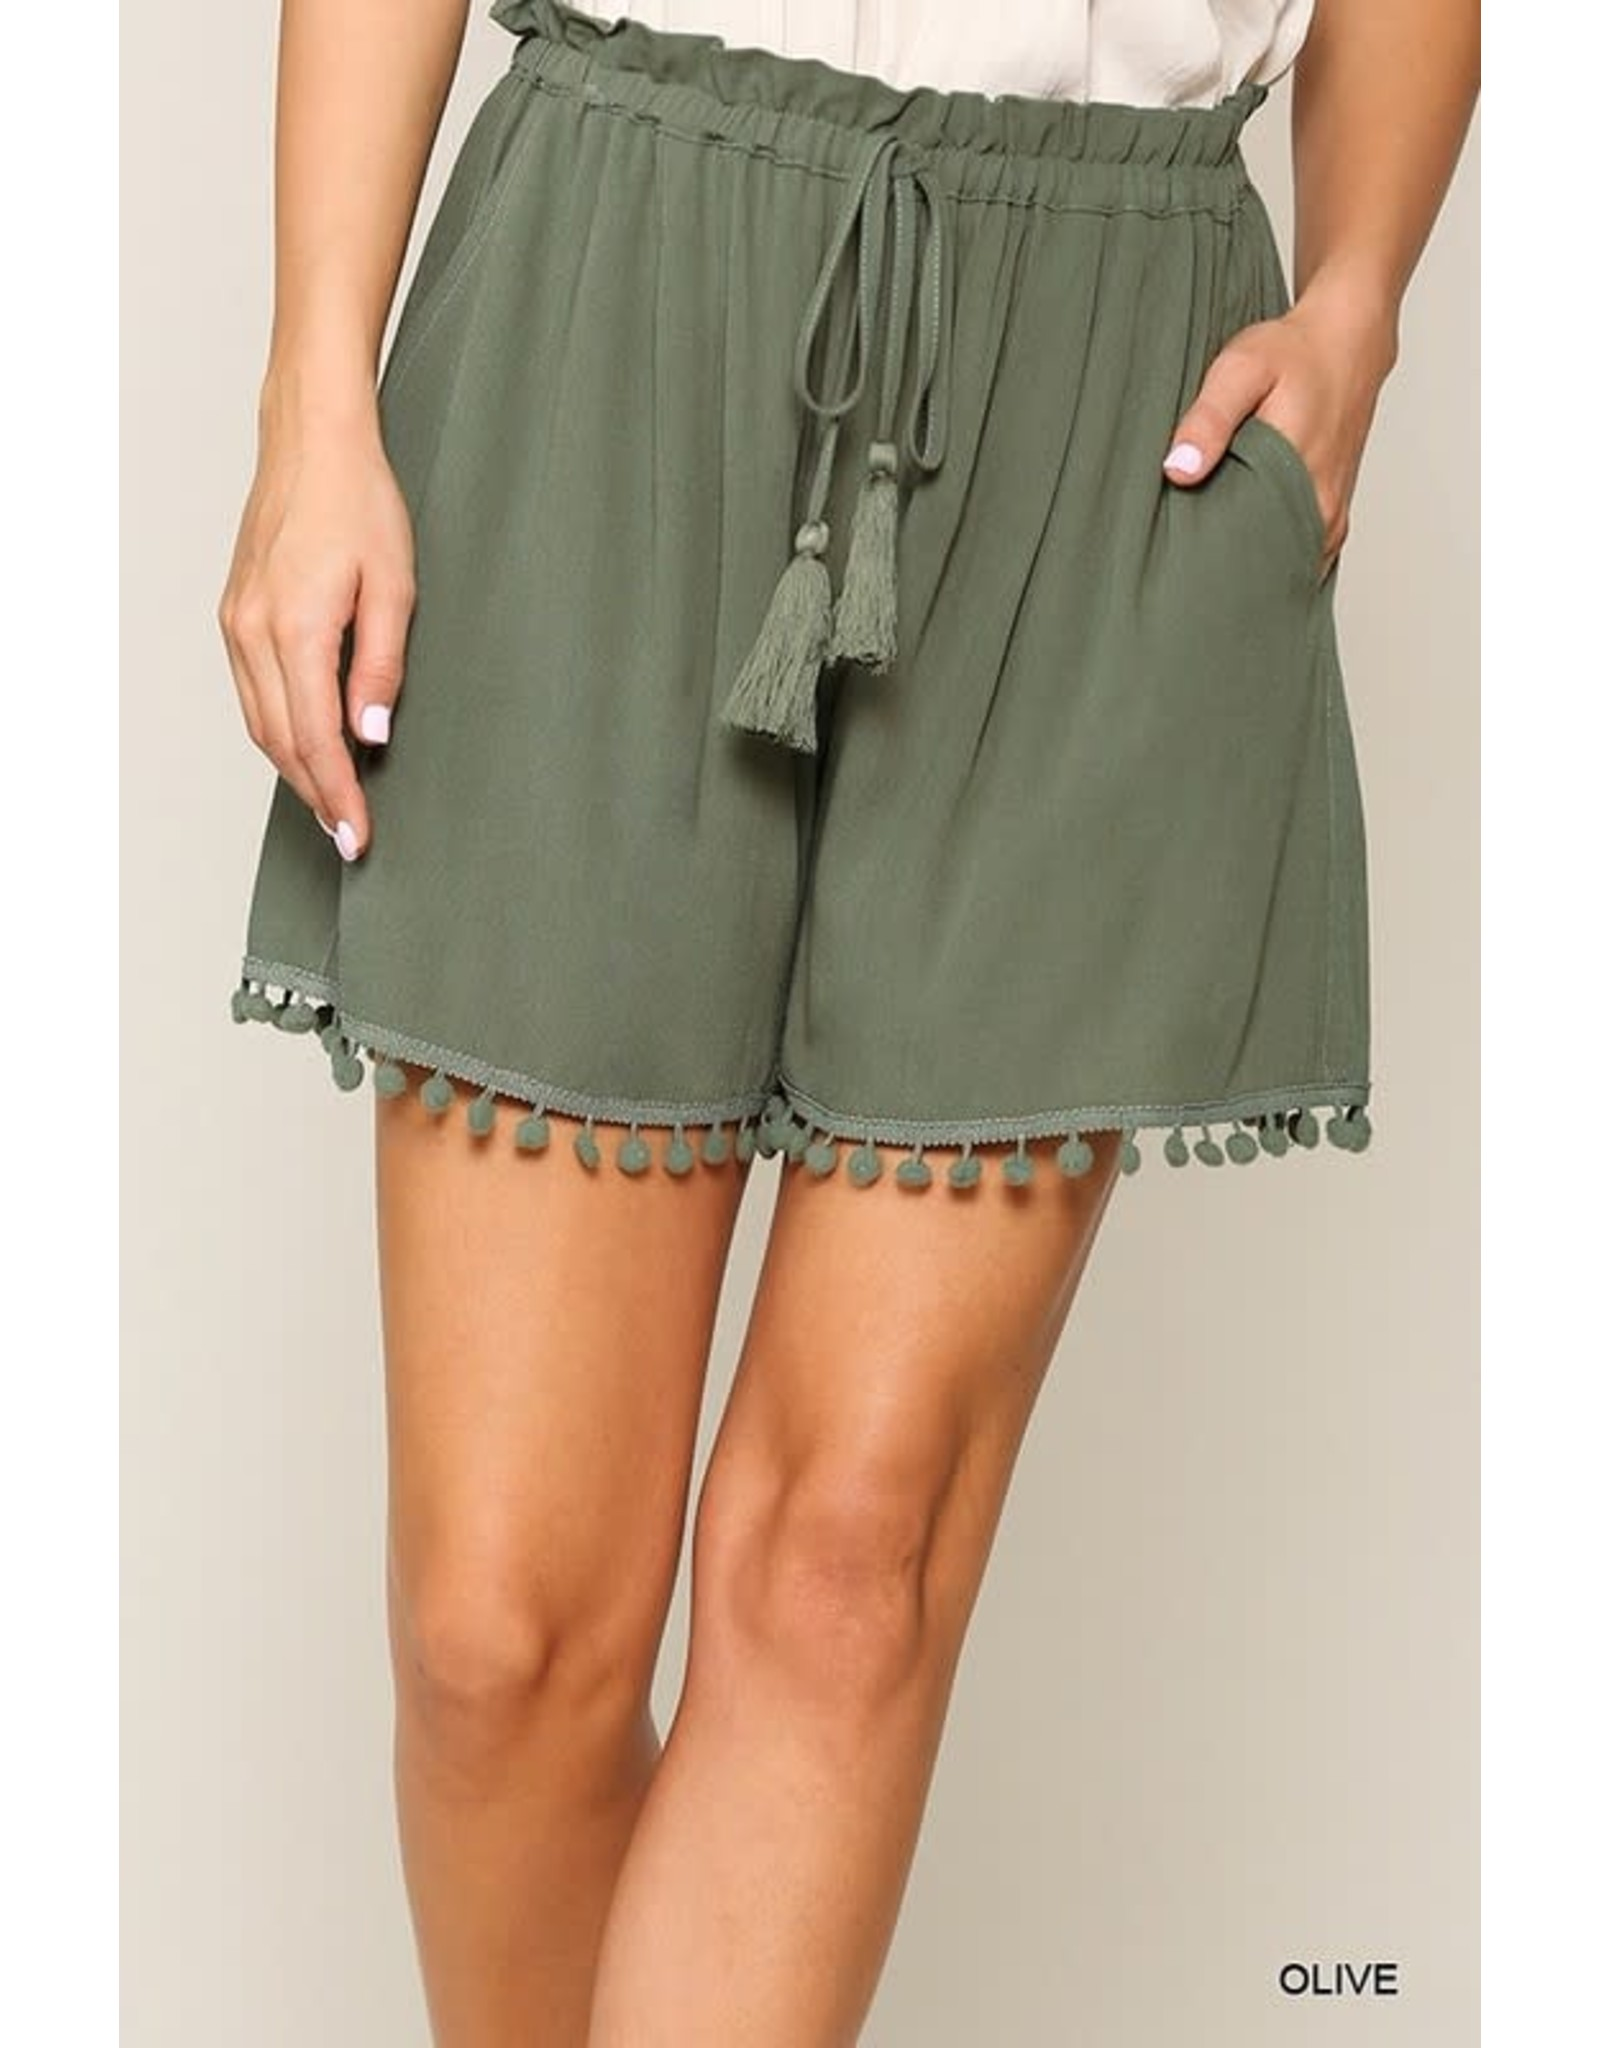 GIGIO OLIVE WOVEN SHORTS WITH TASSEL TIE AND BOTTOM TRIM